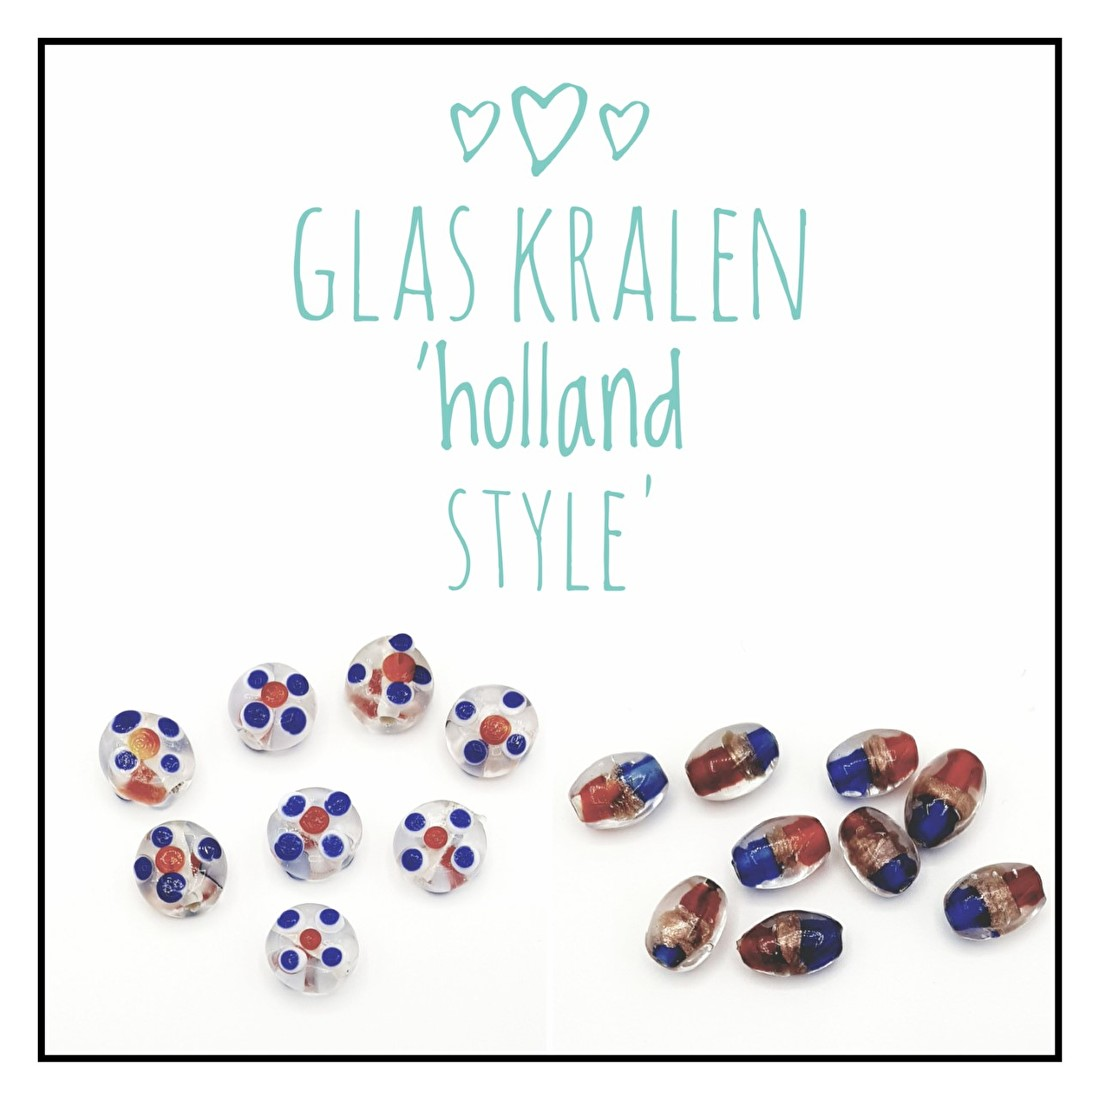 Glaskralen holland